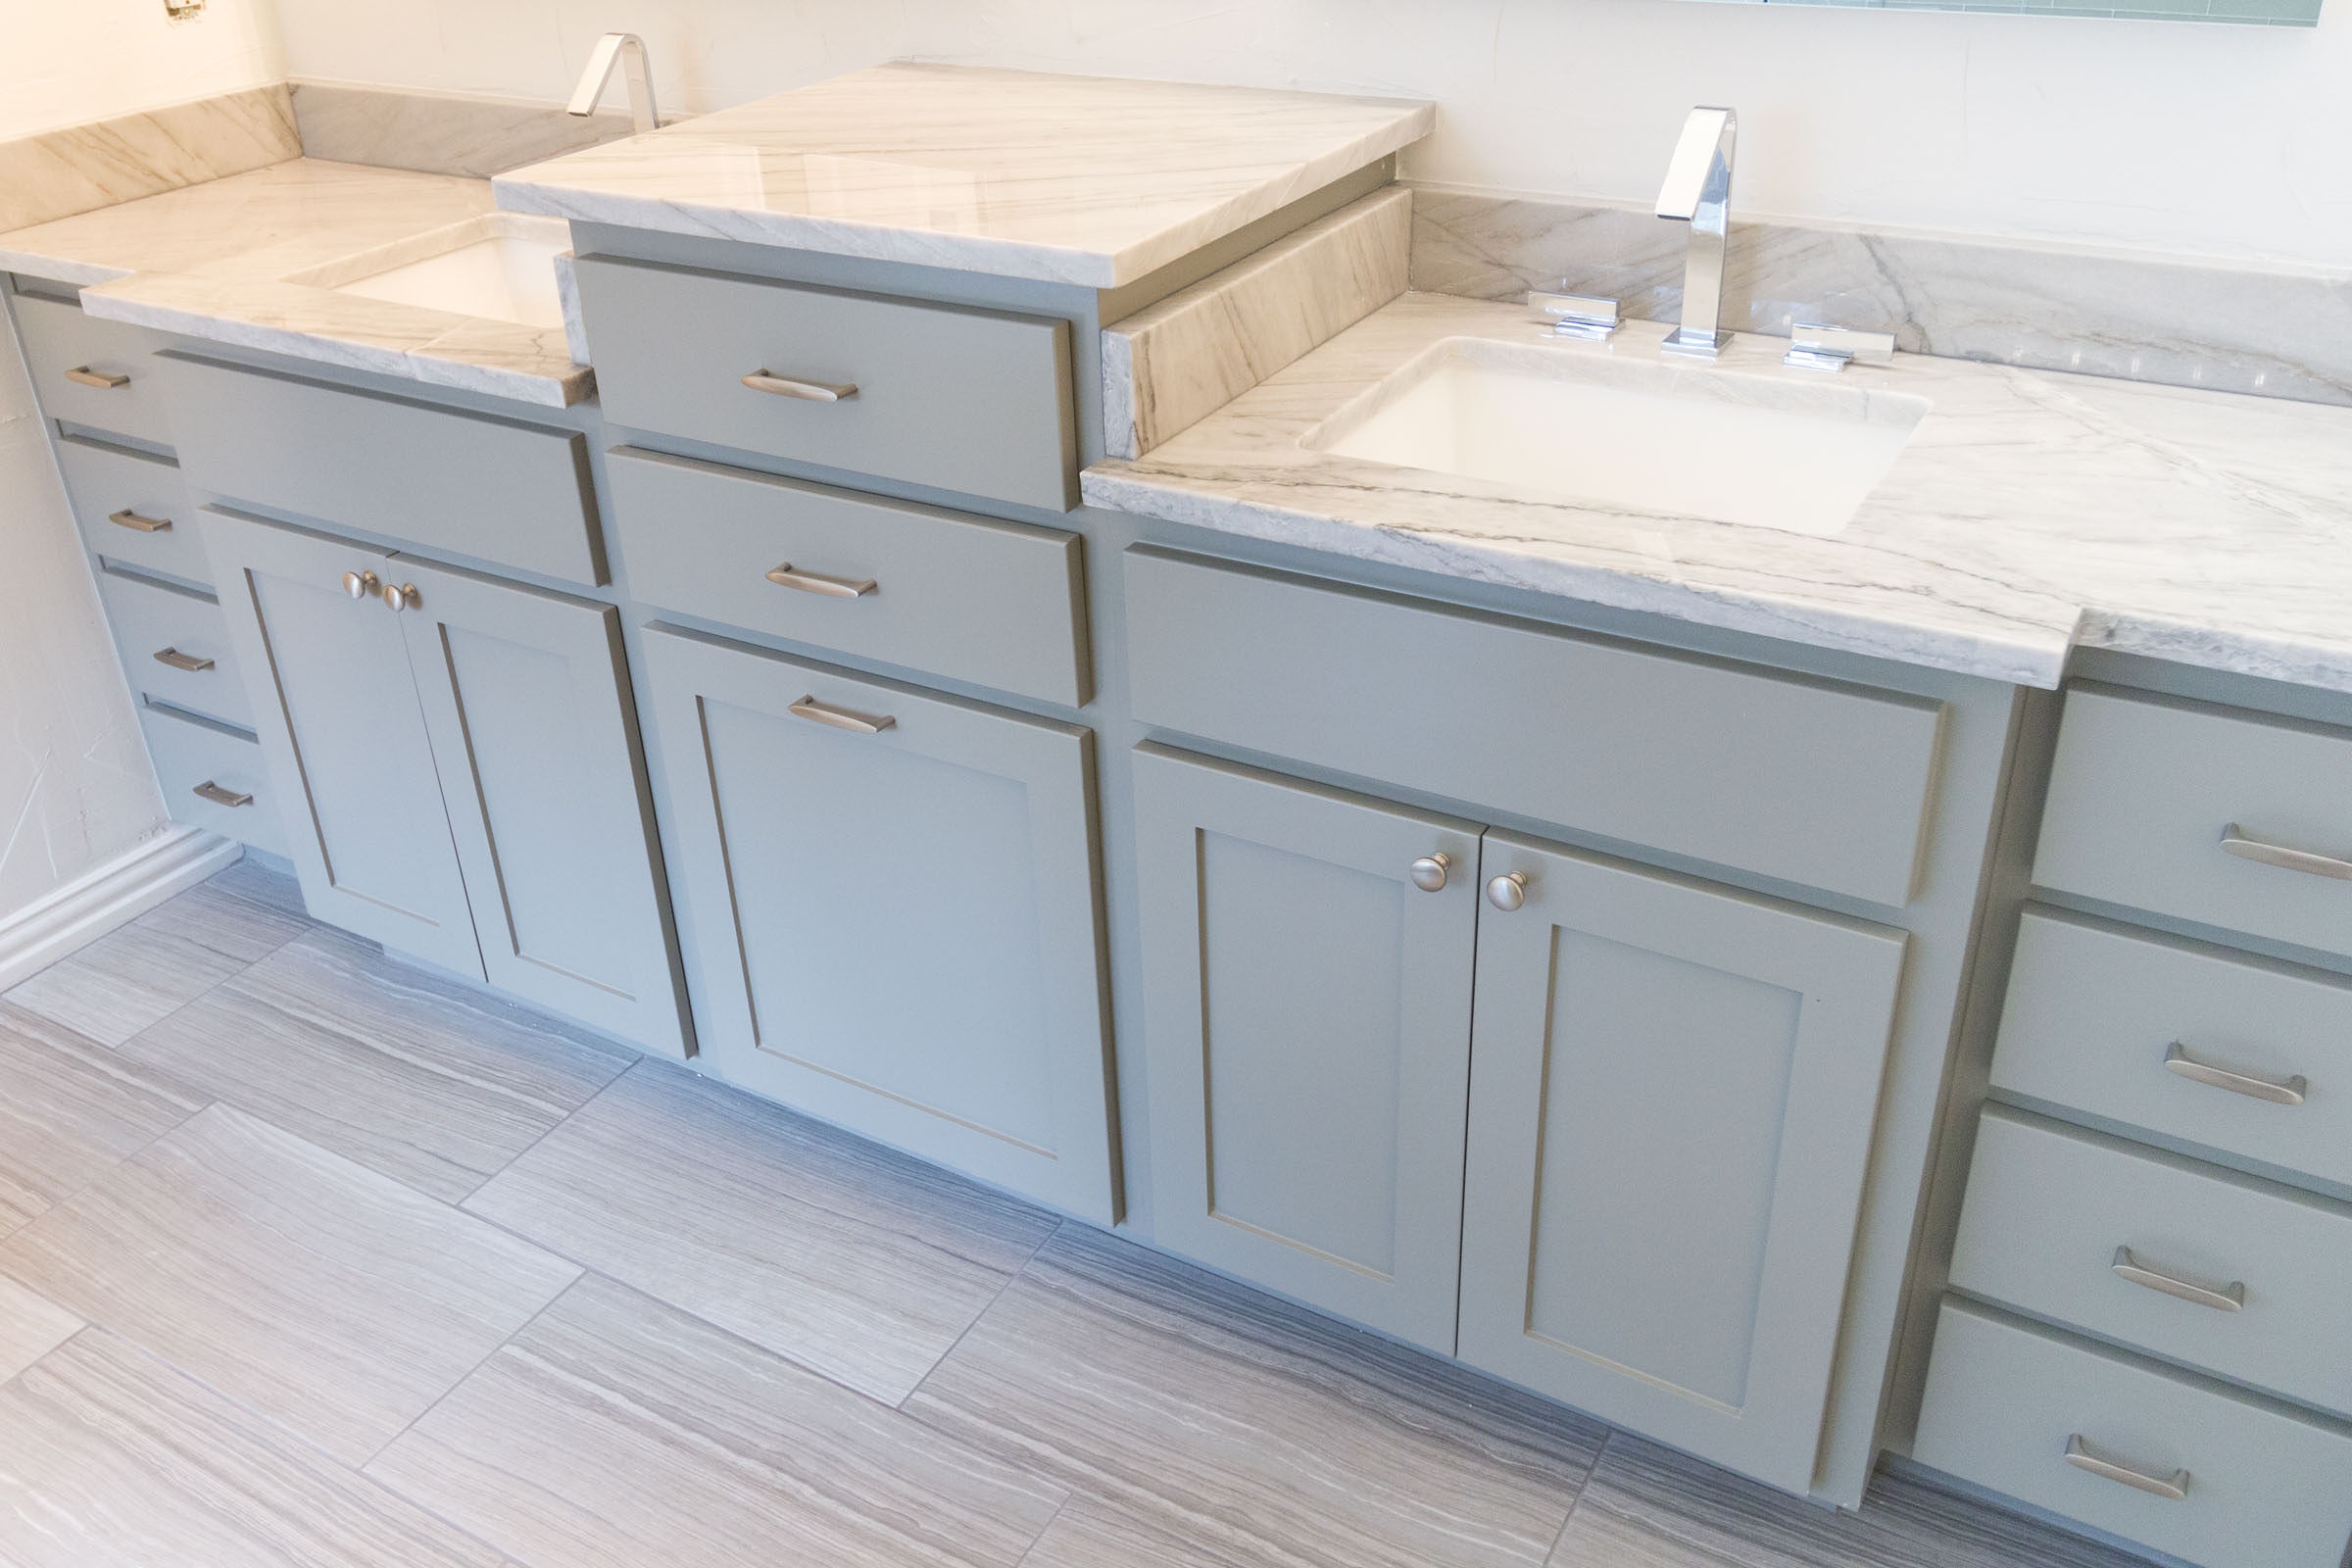 Grey shaker bathroom cabinets, white and grey countertops, grey flooring